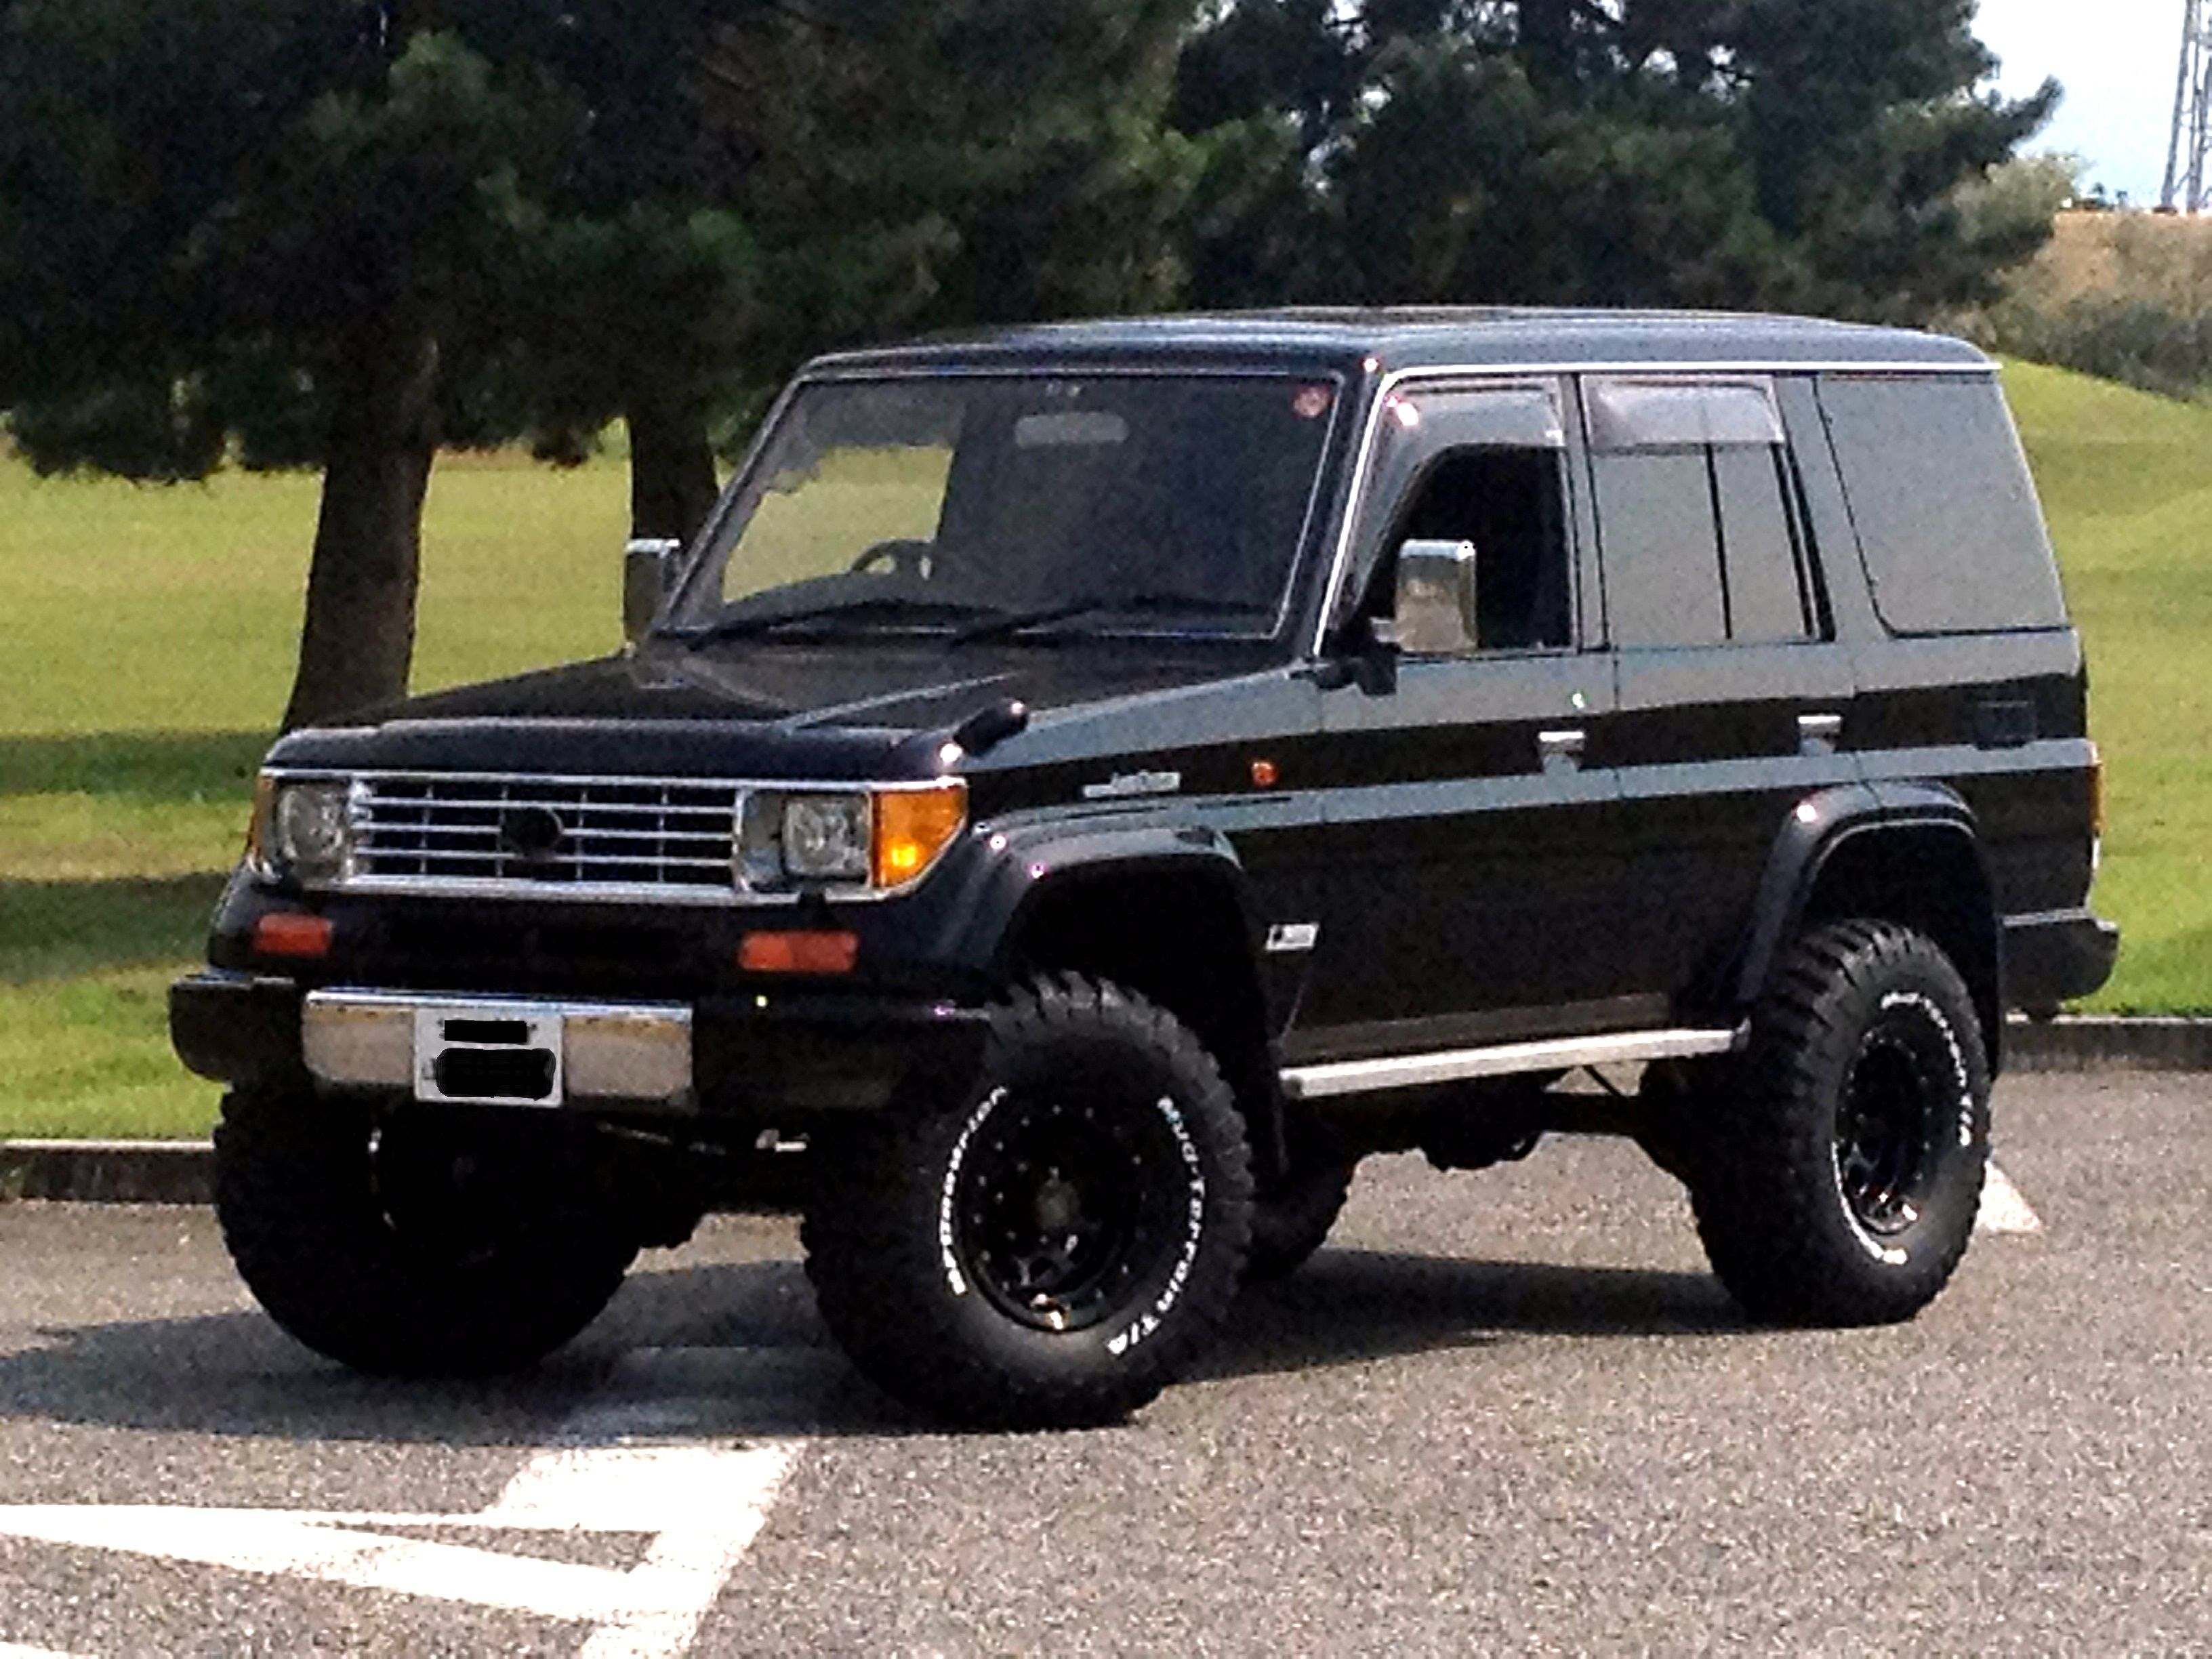 Toyota land cruiser diesel 4x4 pinterest toyota land cruiser diesel toyota land cruiser and land cruiser